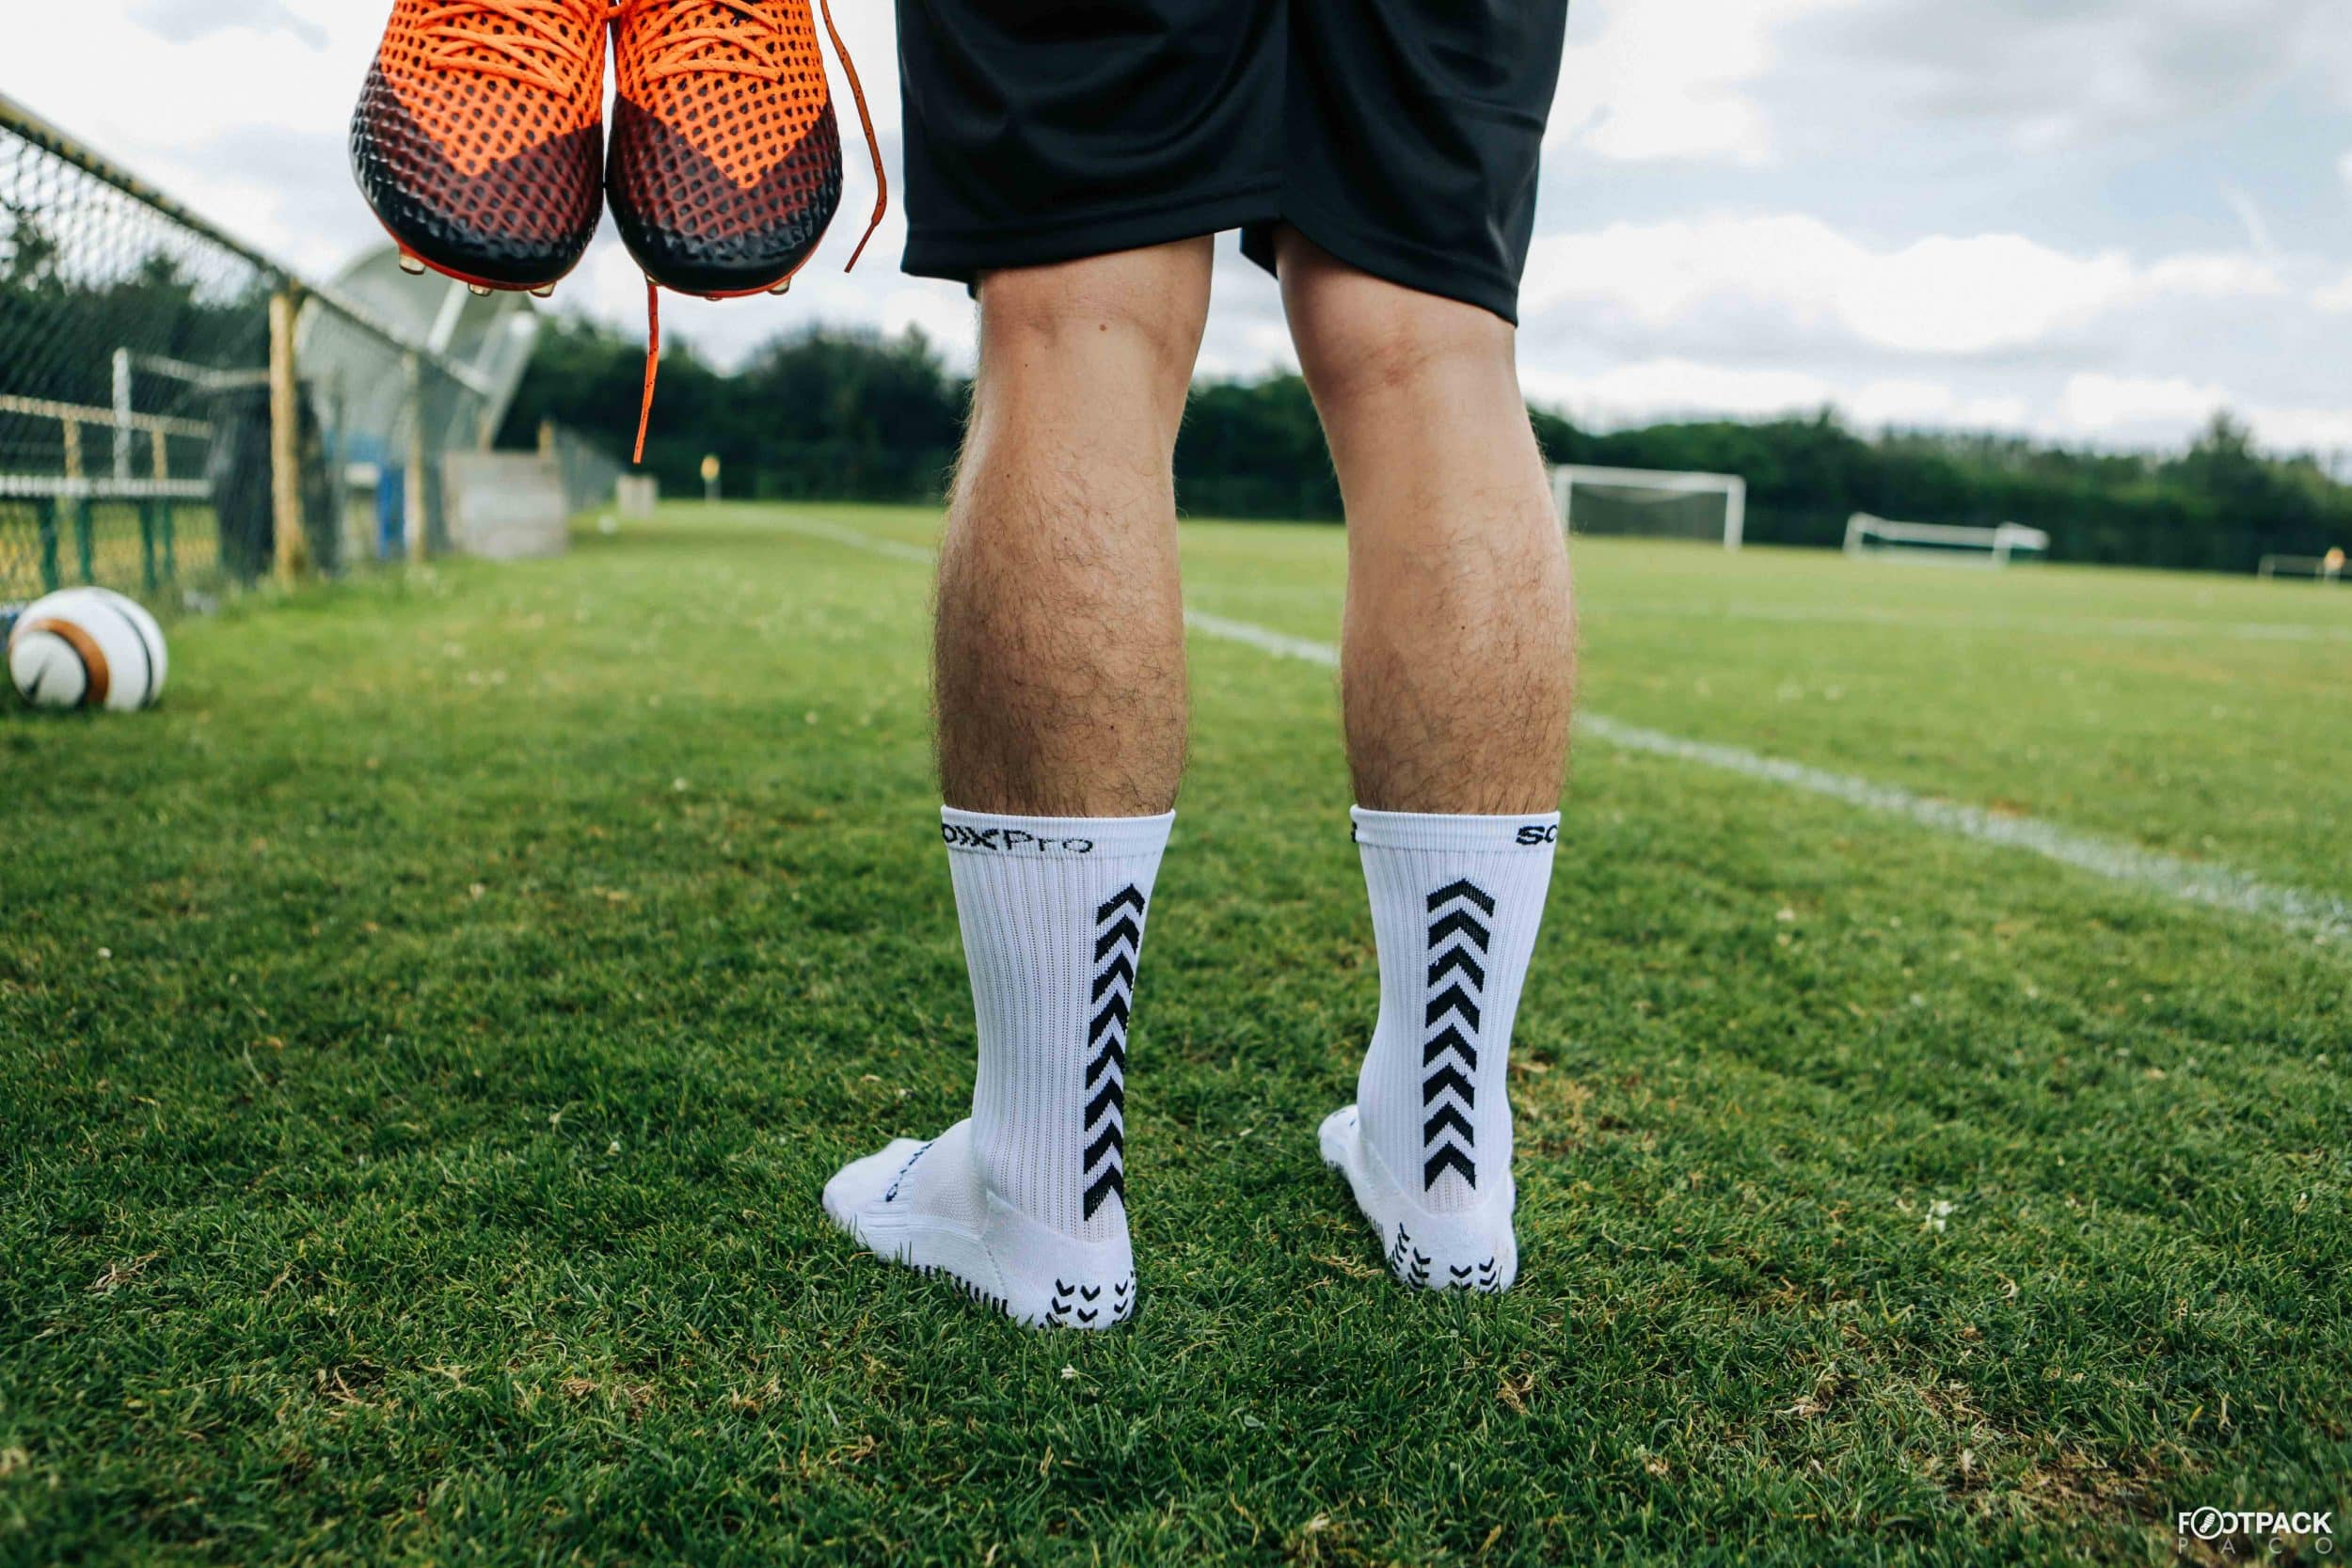 chaussettes-football-soxpro-test-7